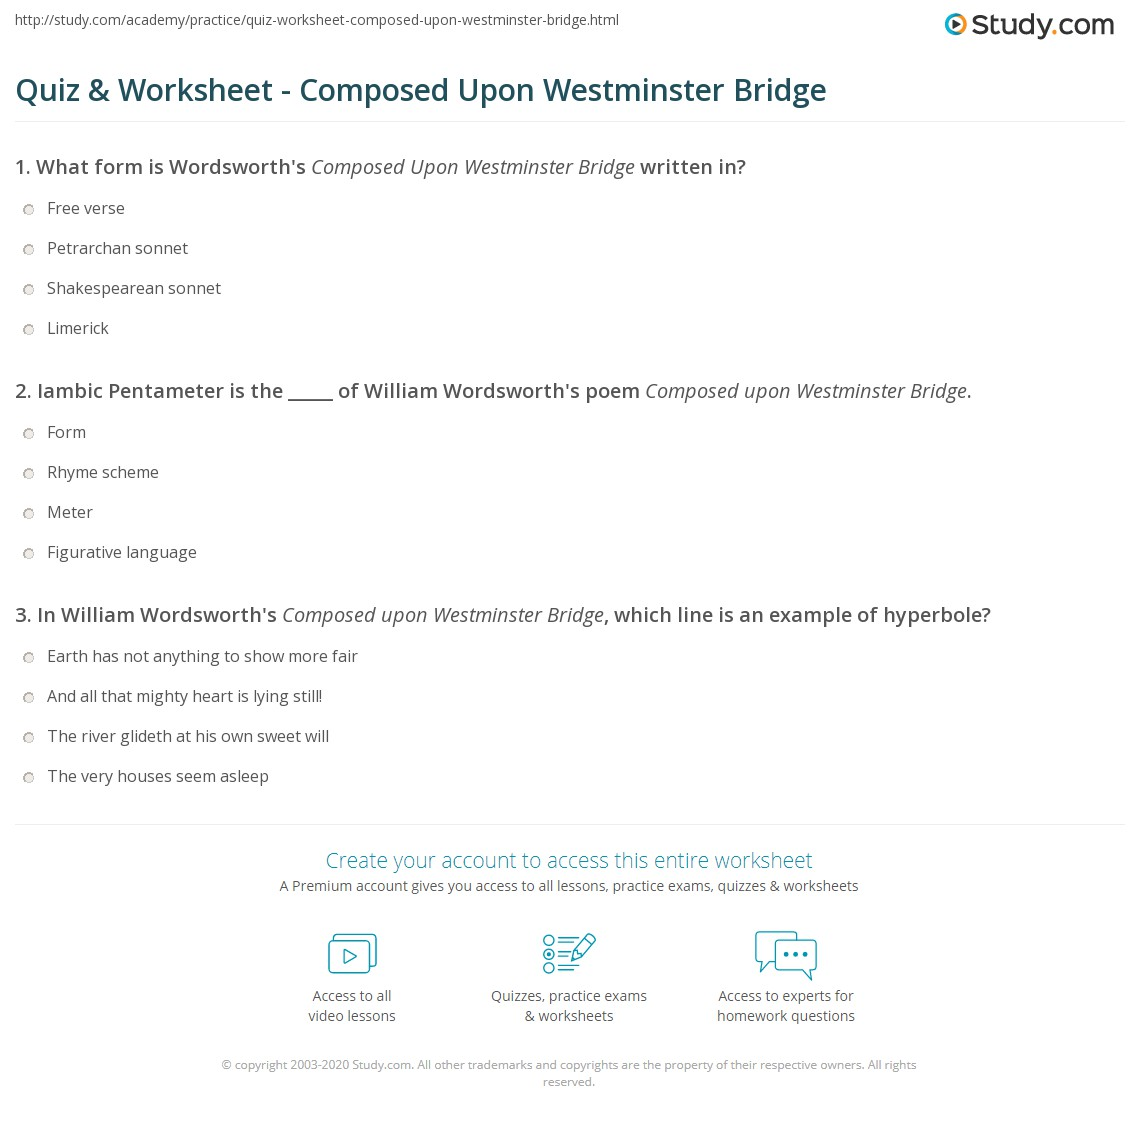 analysis of lines composed upon westminster bridge by william wordsworth Comparison of london by william blake and lines composed upon westminster bridge by william wordsworth 'earth has nothing to show more fair', taken from william wordsworths 'lines composed upon westminster bridge,' could not be more of a contrast to the way william blake describes what he sees in his poem 'london'.